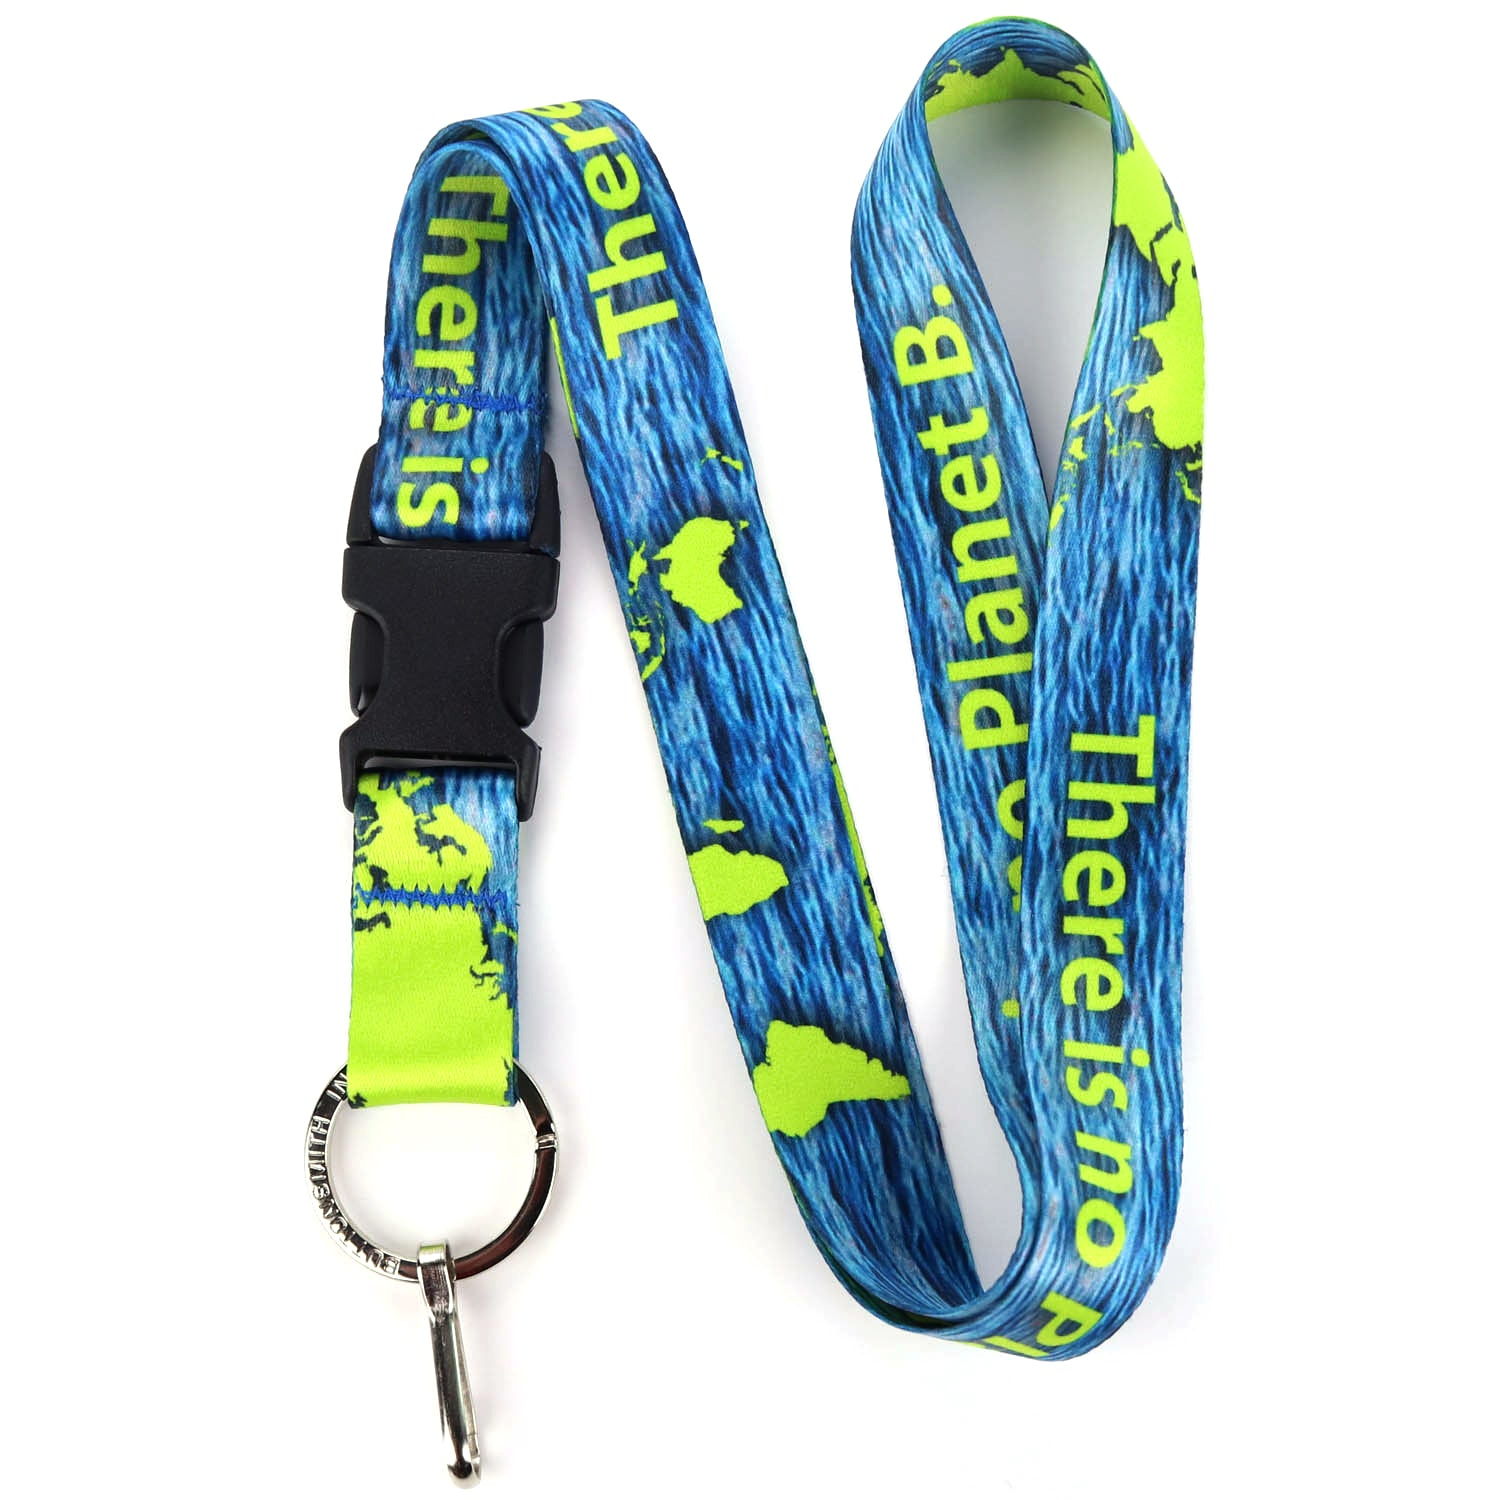 Buttonsmith Planet B Lanyard - Made in USA